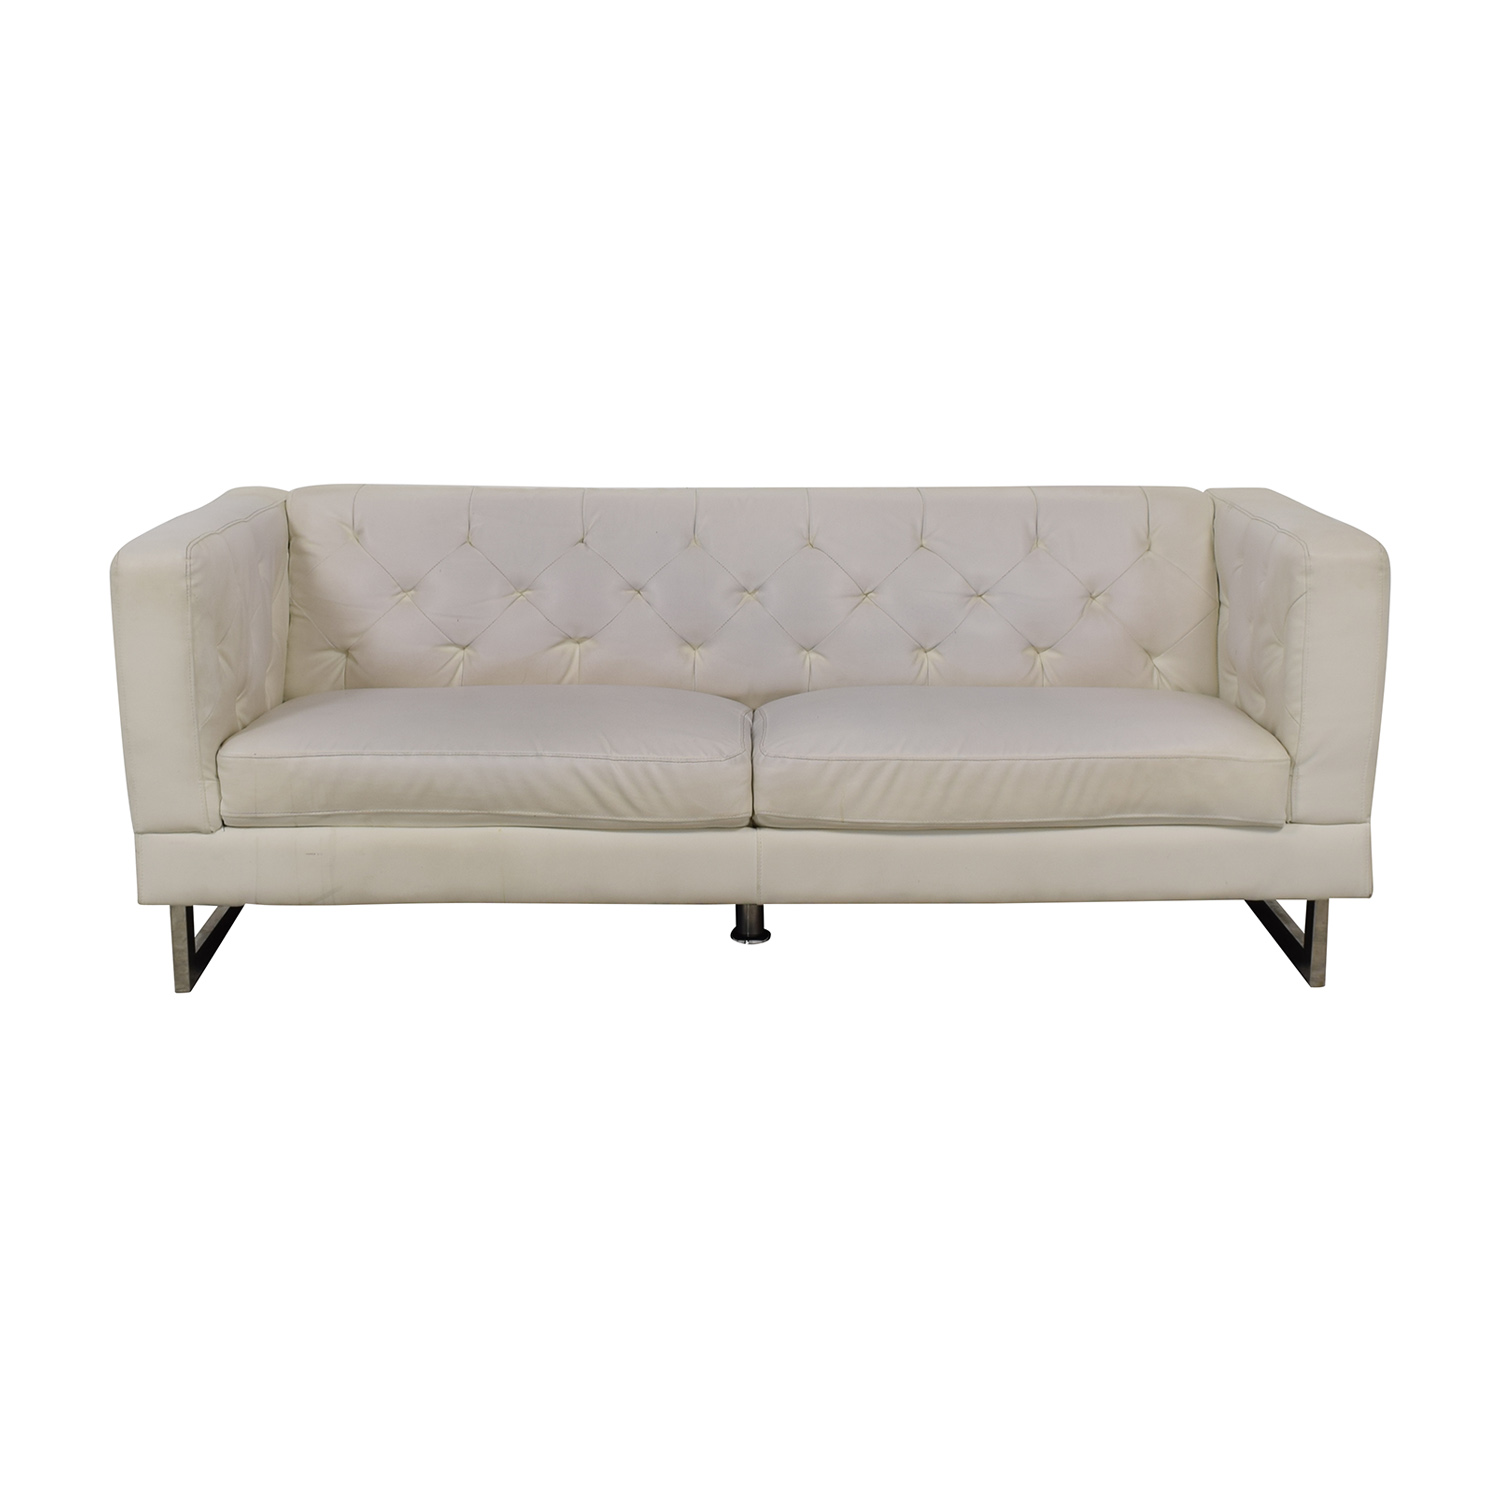 buy Pier 1 White Tufted Two-Cushion Couch Pier 1 Classic Sofas